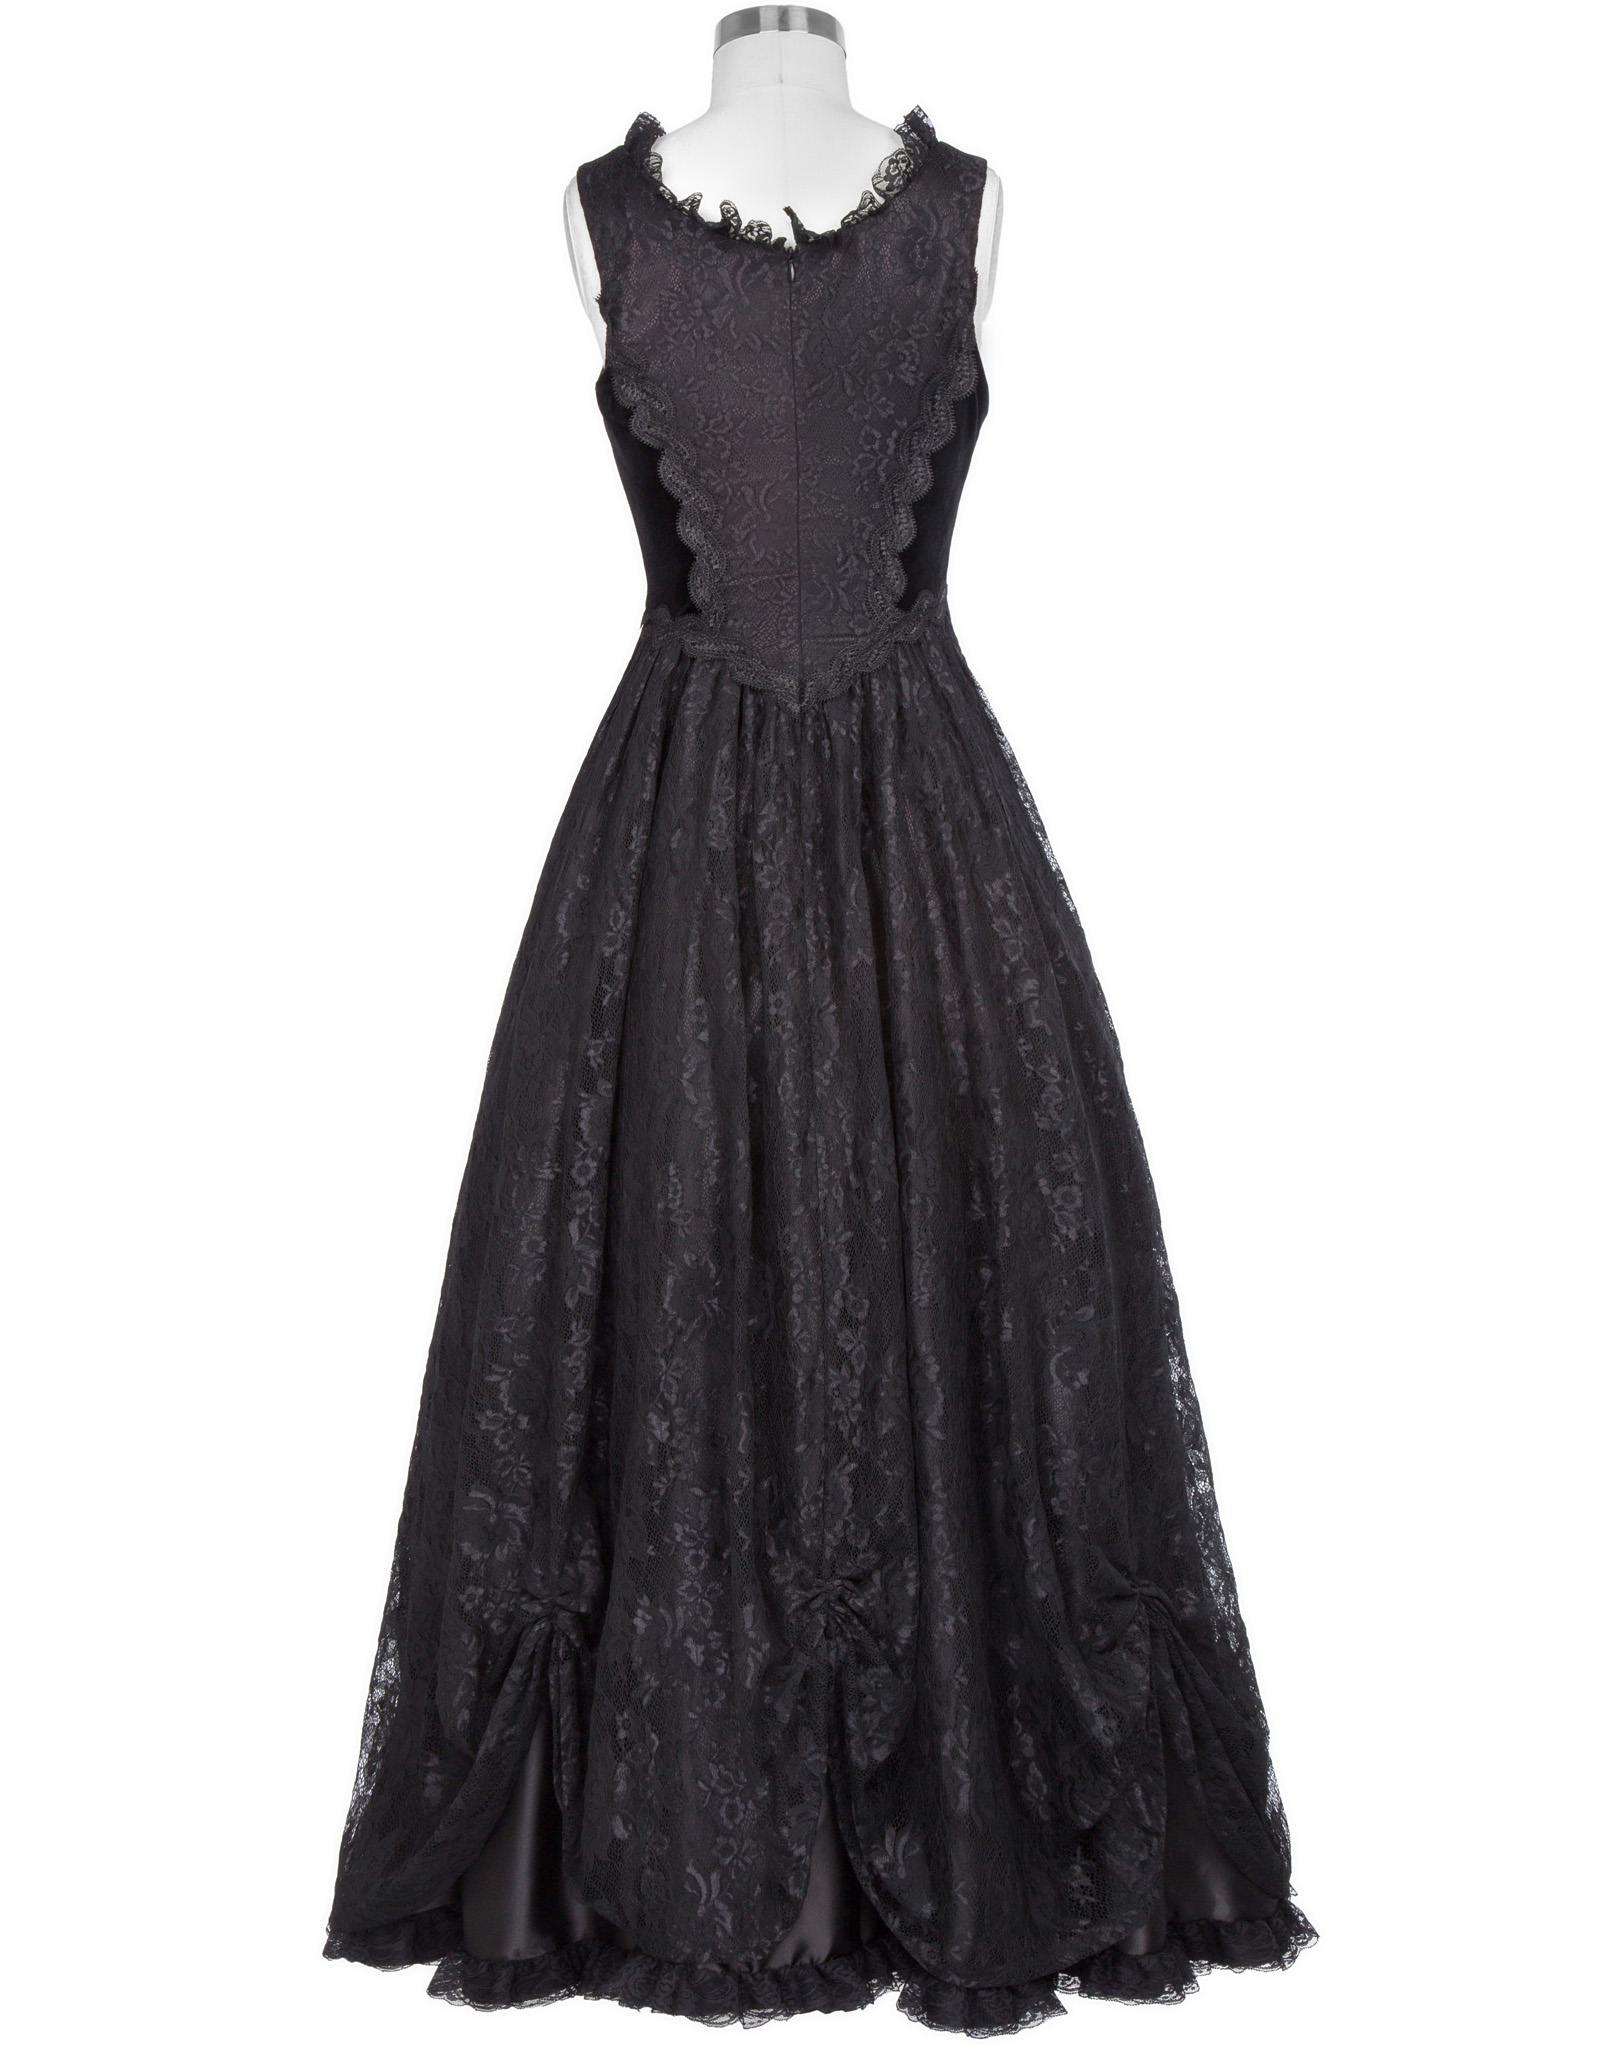 Victorian Edwardian Prom Gown Gothic Theater Steampunk Lace &Satin Dress Gifts